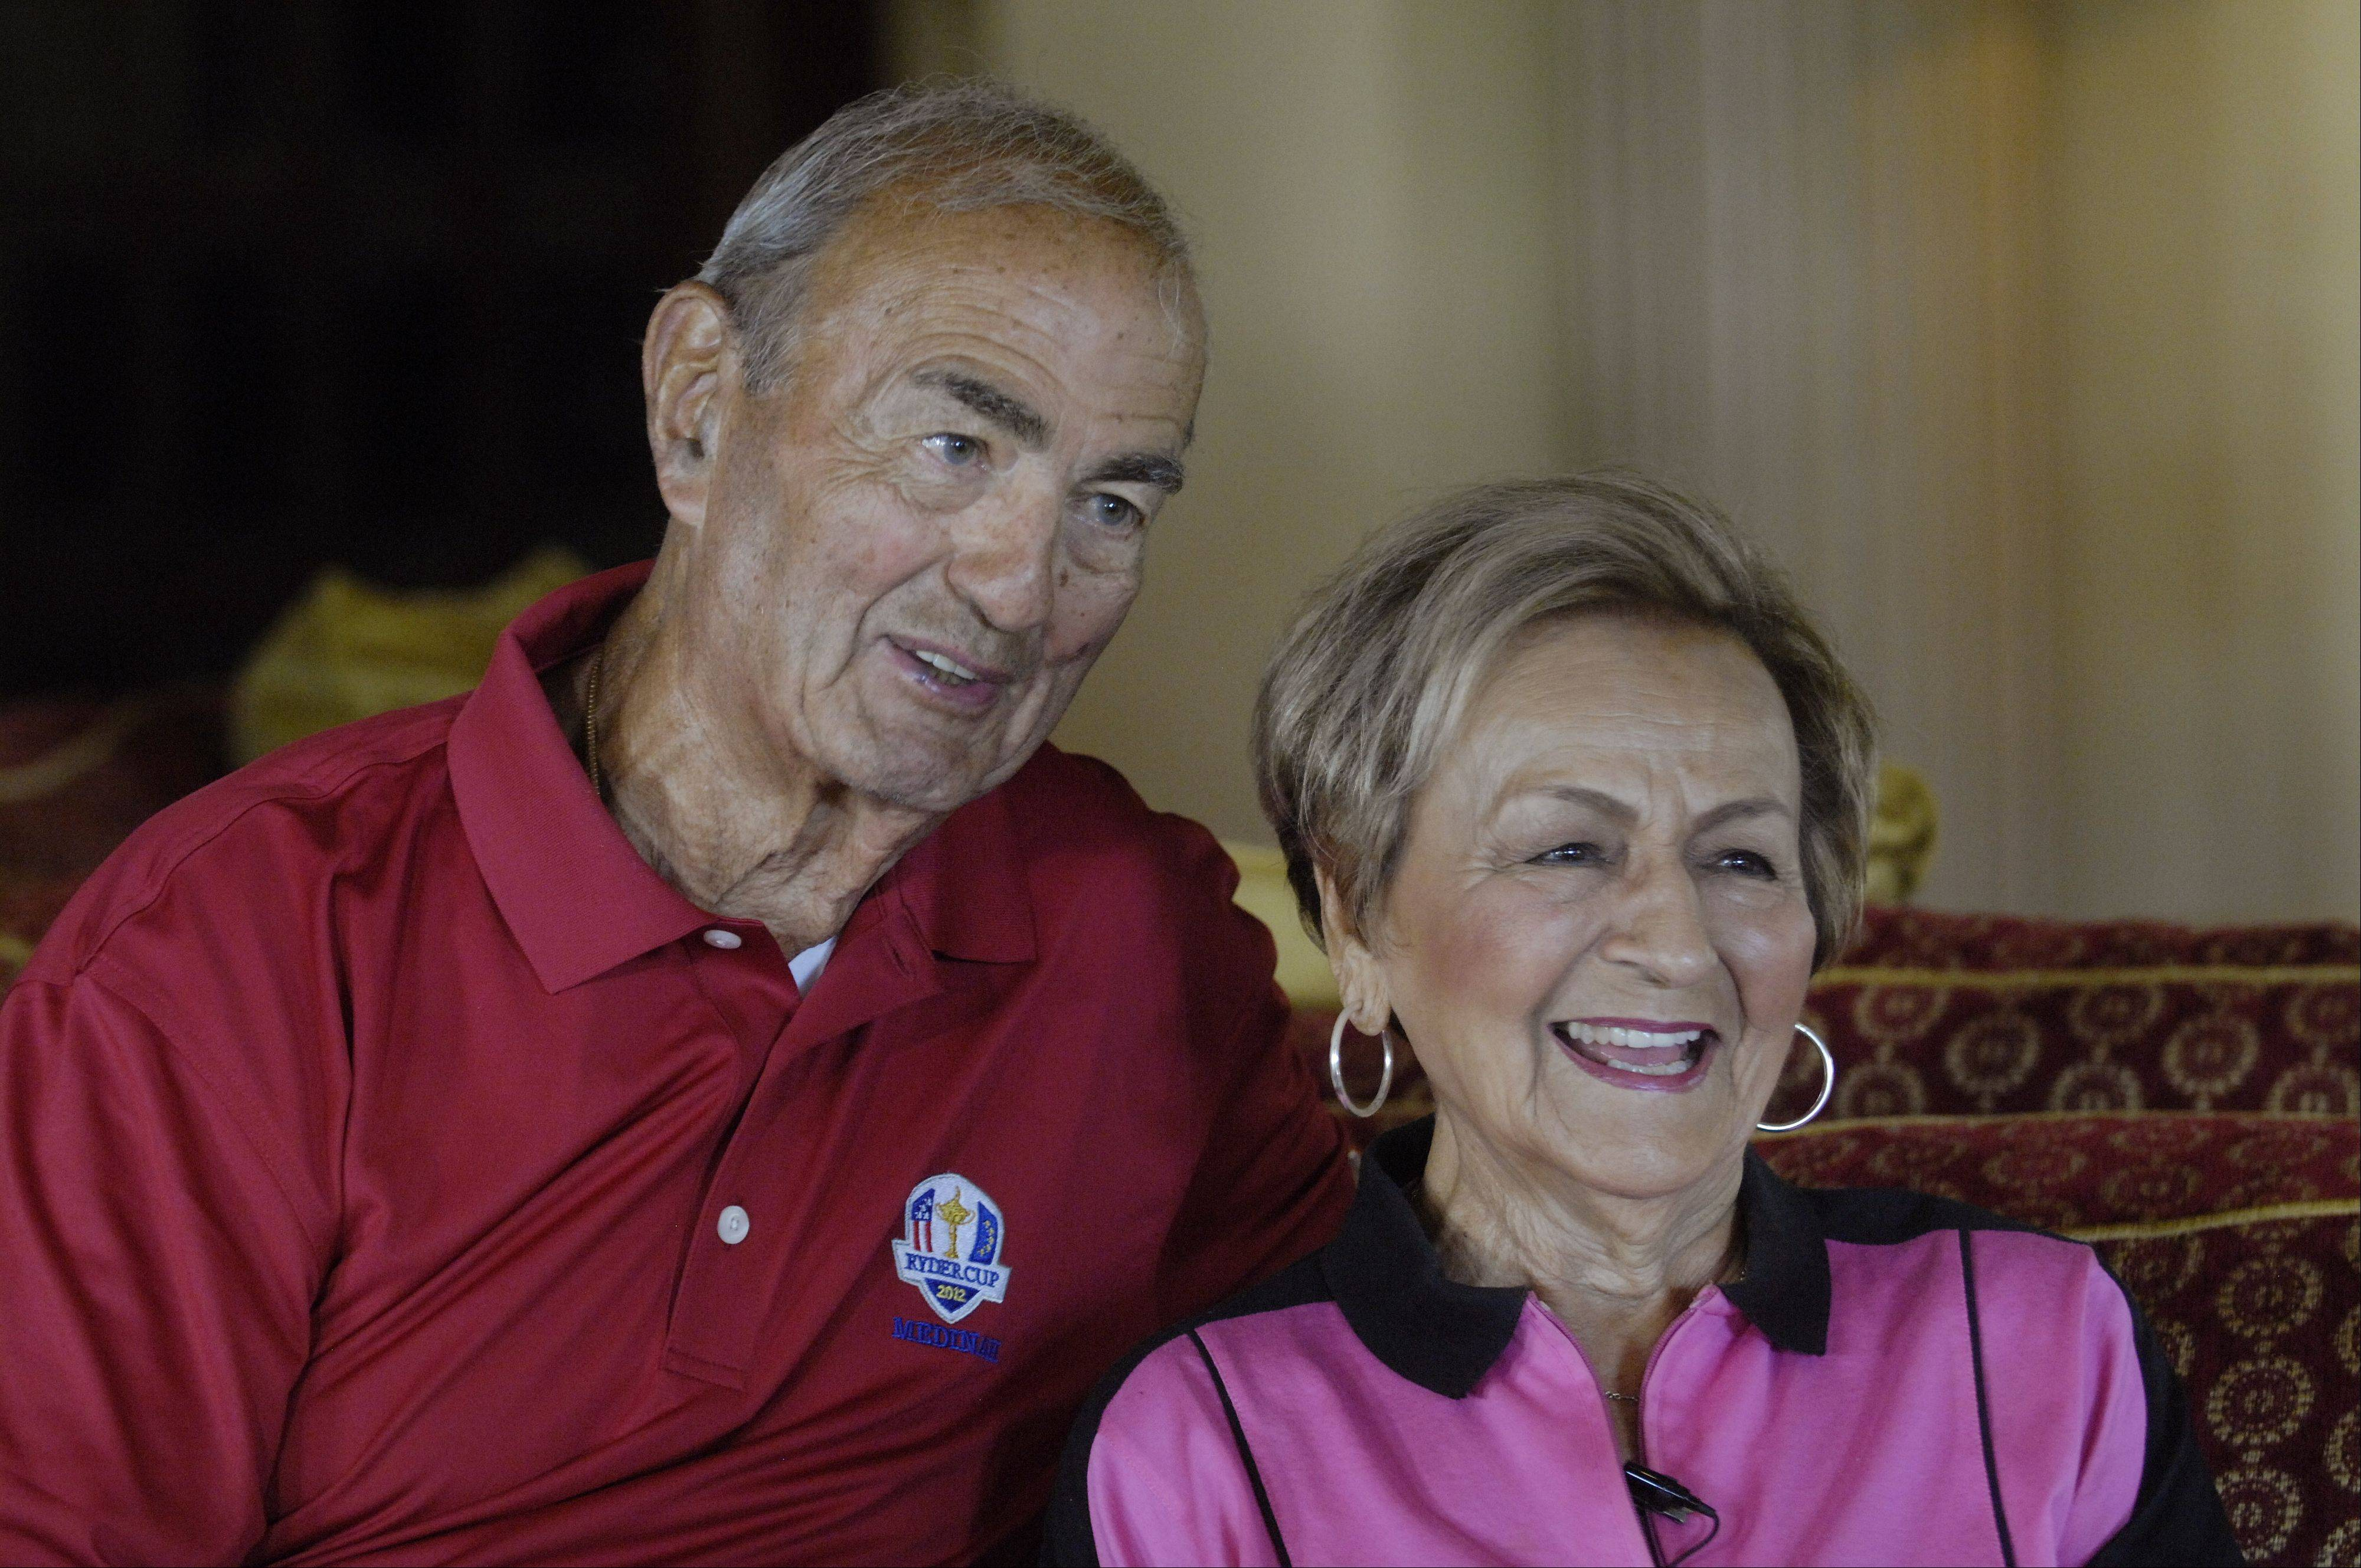 Park Ridge residents Peter and Bertha Broustis are no stranger to big events at Medinah Country club. They've witnessed and been a part of a U.S. Open, a U.S. Senior Open and a pair of PGA Championships.